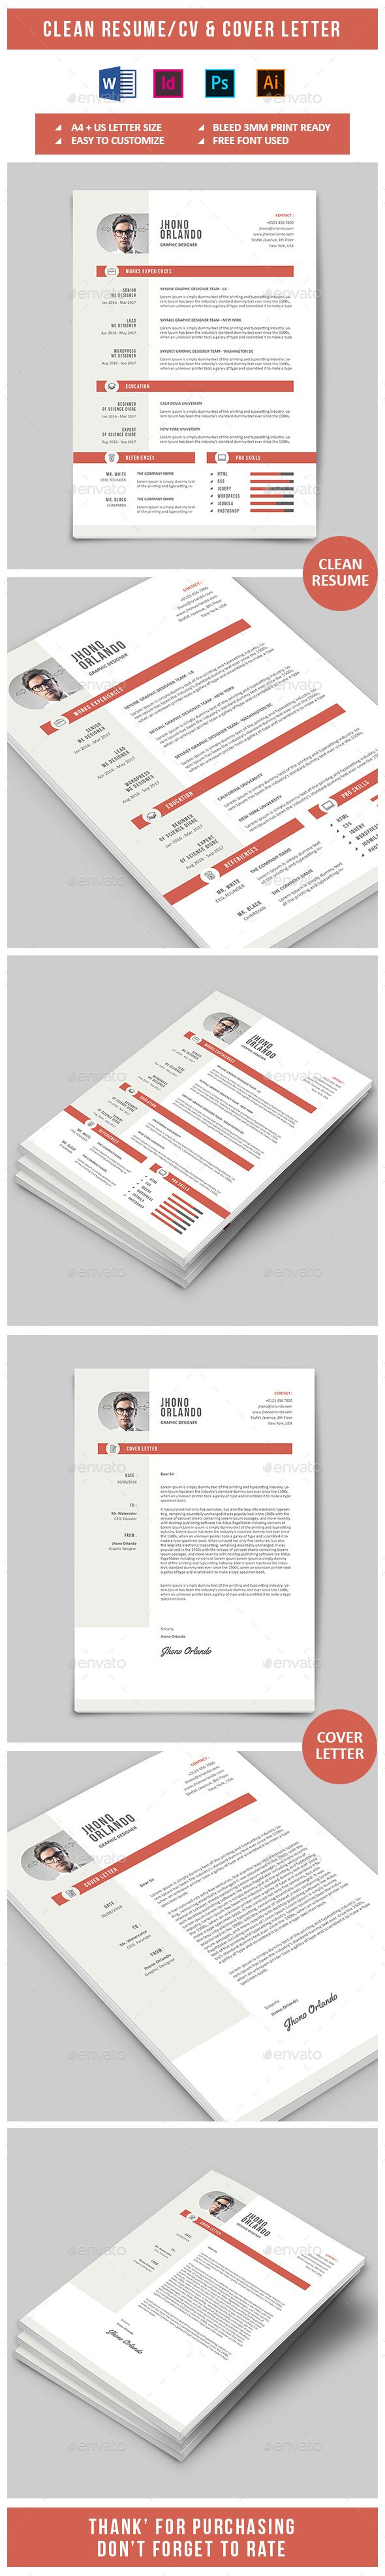 Resume Cover Letters Clean Resume & Cover Letter Template  Pinterest  Resume Cover .